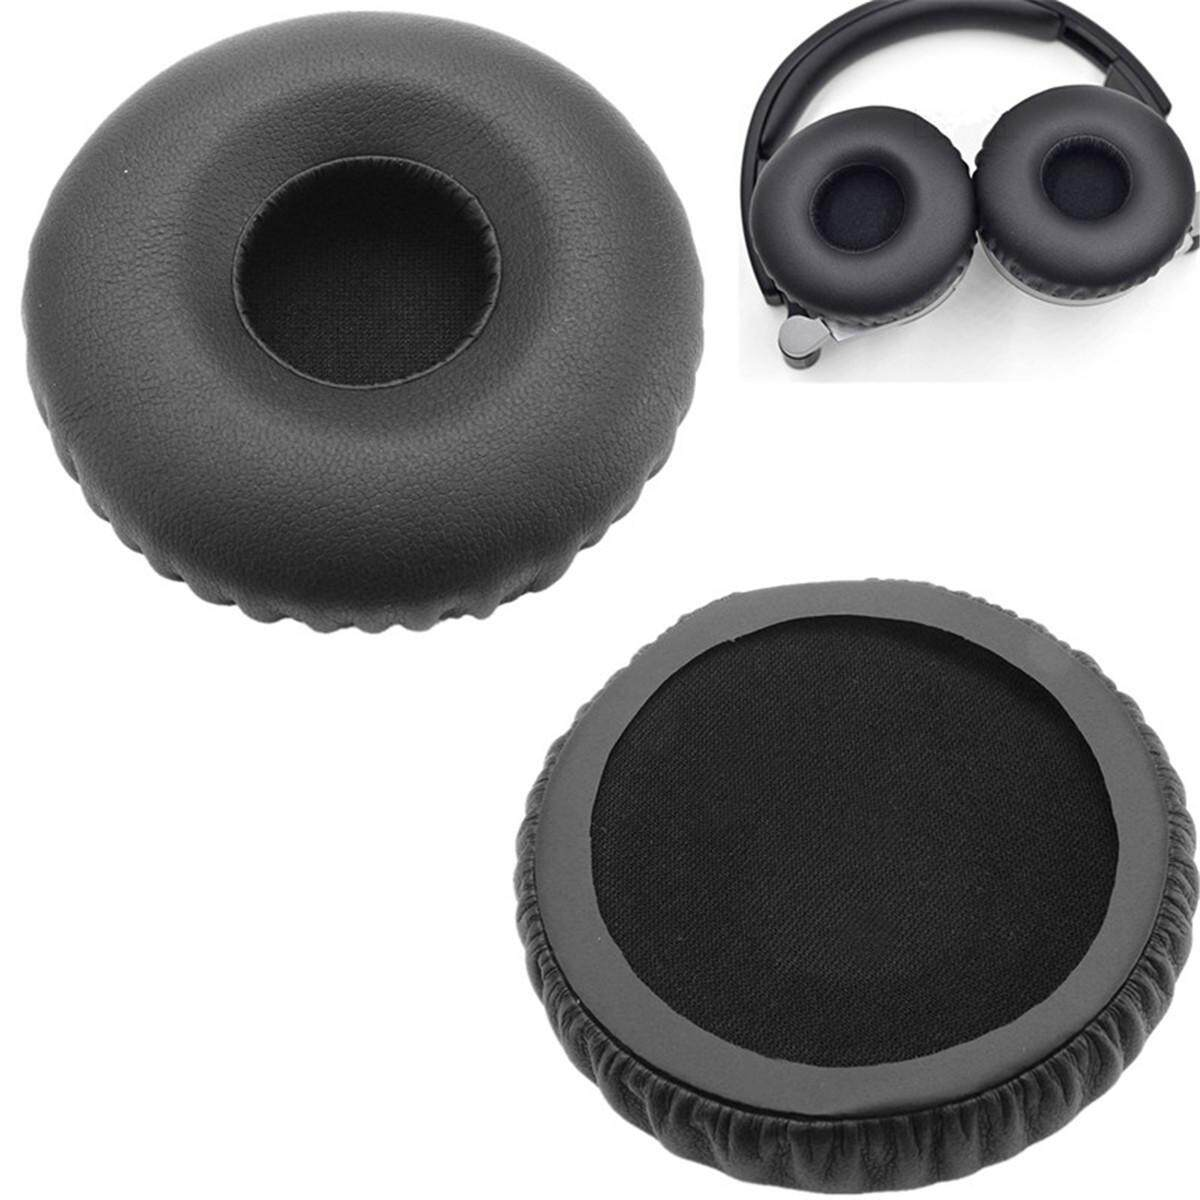 Replacement Ear Pads Cushion Soft Cover For Jbl Synchros E40bt E40 Headphones Black By Glimmer